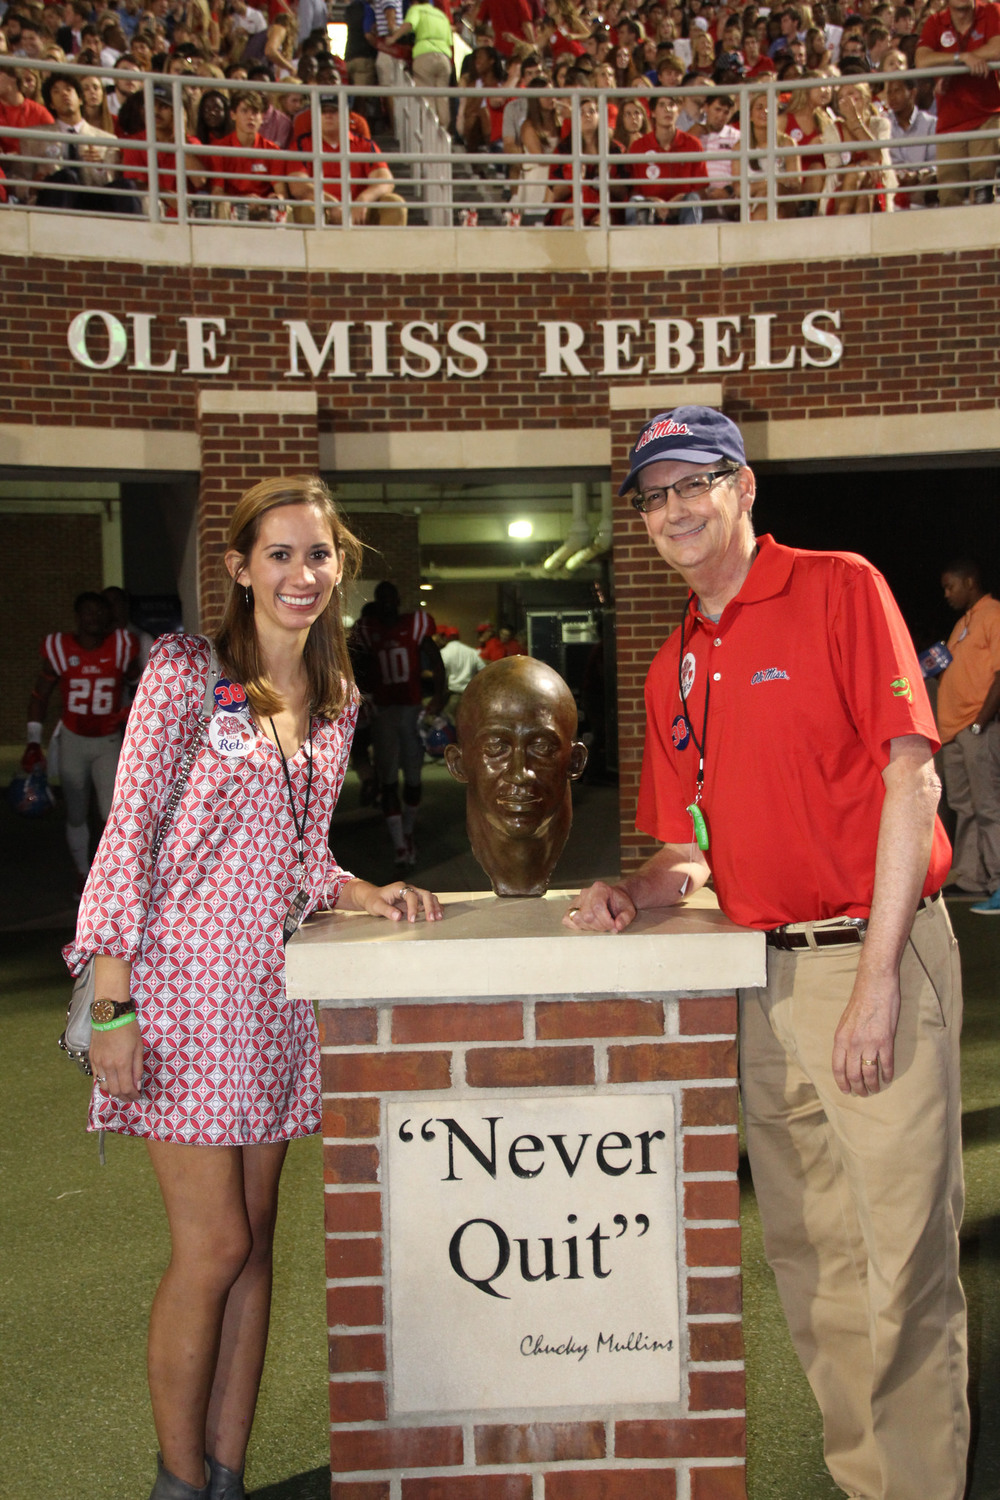 Walt Chambliss (right) and daughter, Shelby (left) pose with the Chucky Mullins memorial statue at Vaught Hemingway Stadium, Ole Miss